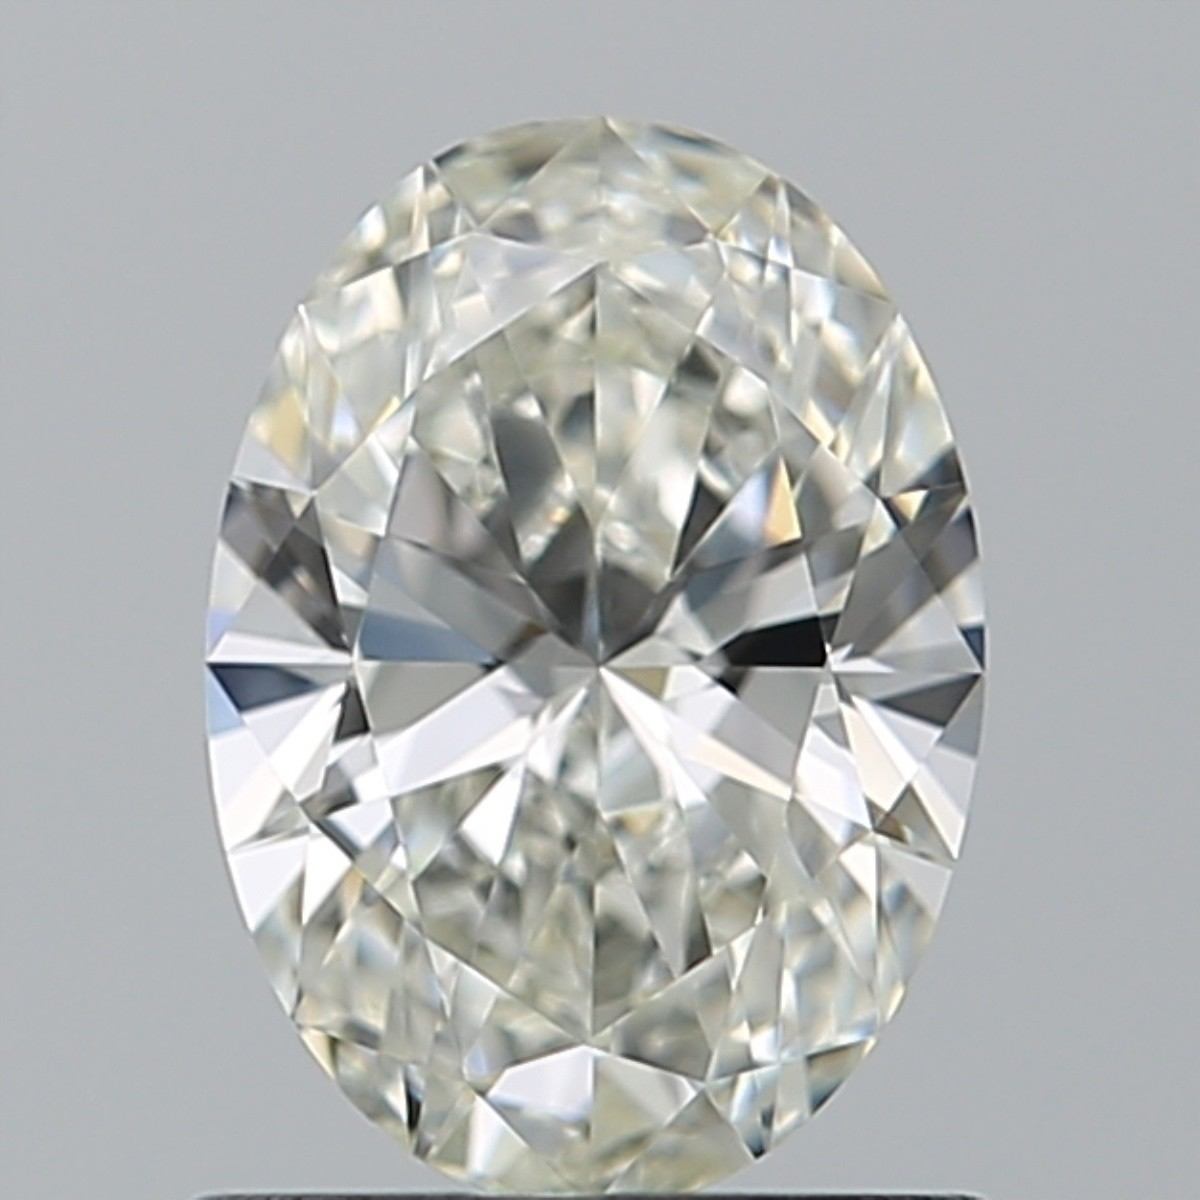 0.80 Carat Oval Diamond (I/VVS1)